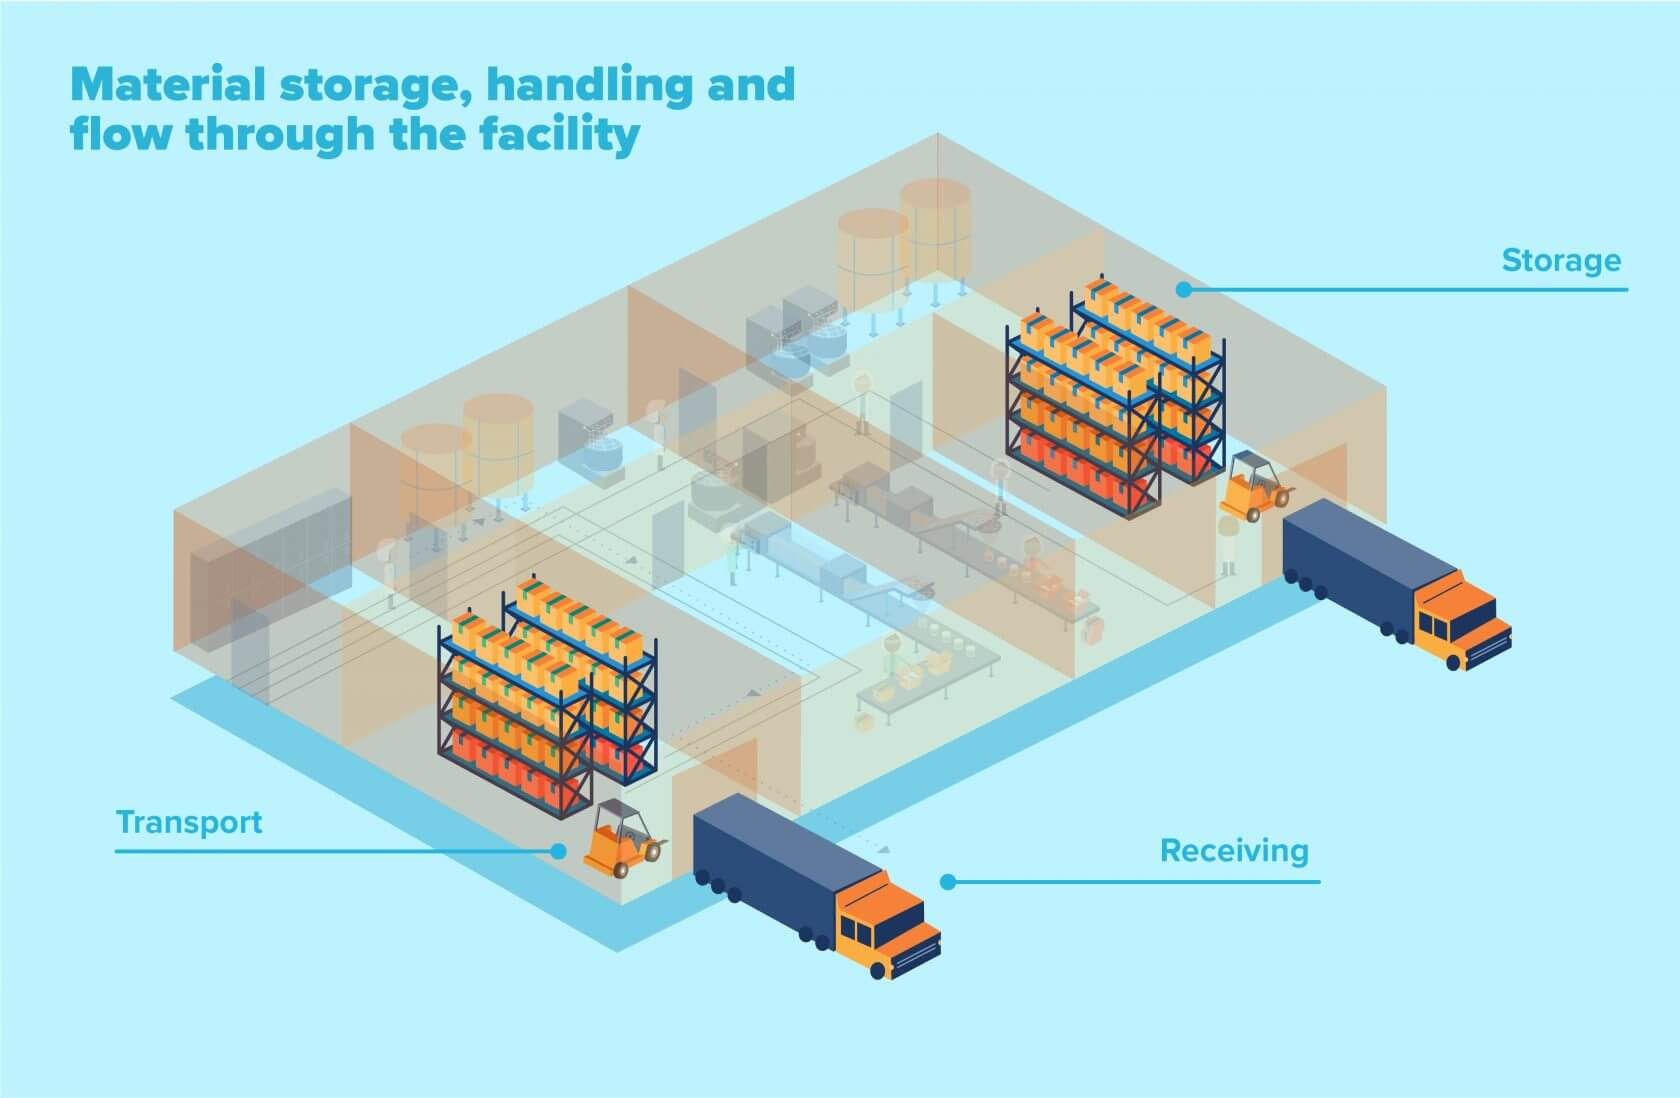 Planning material storage, handling and flow to control allergens in food manufacturing